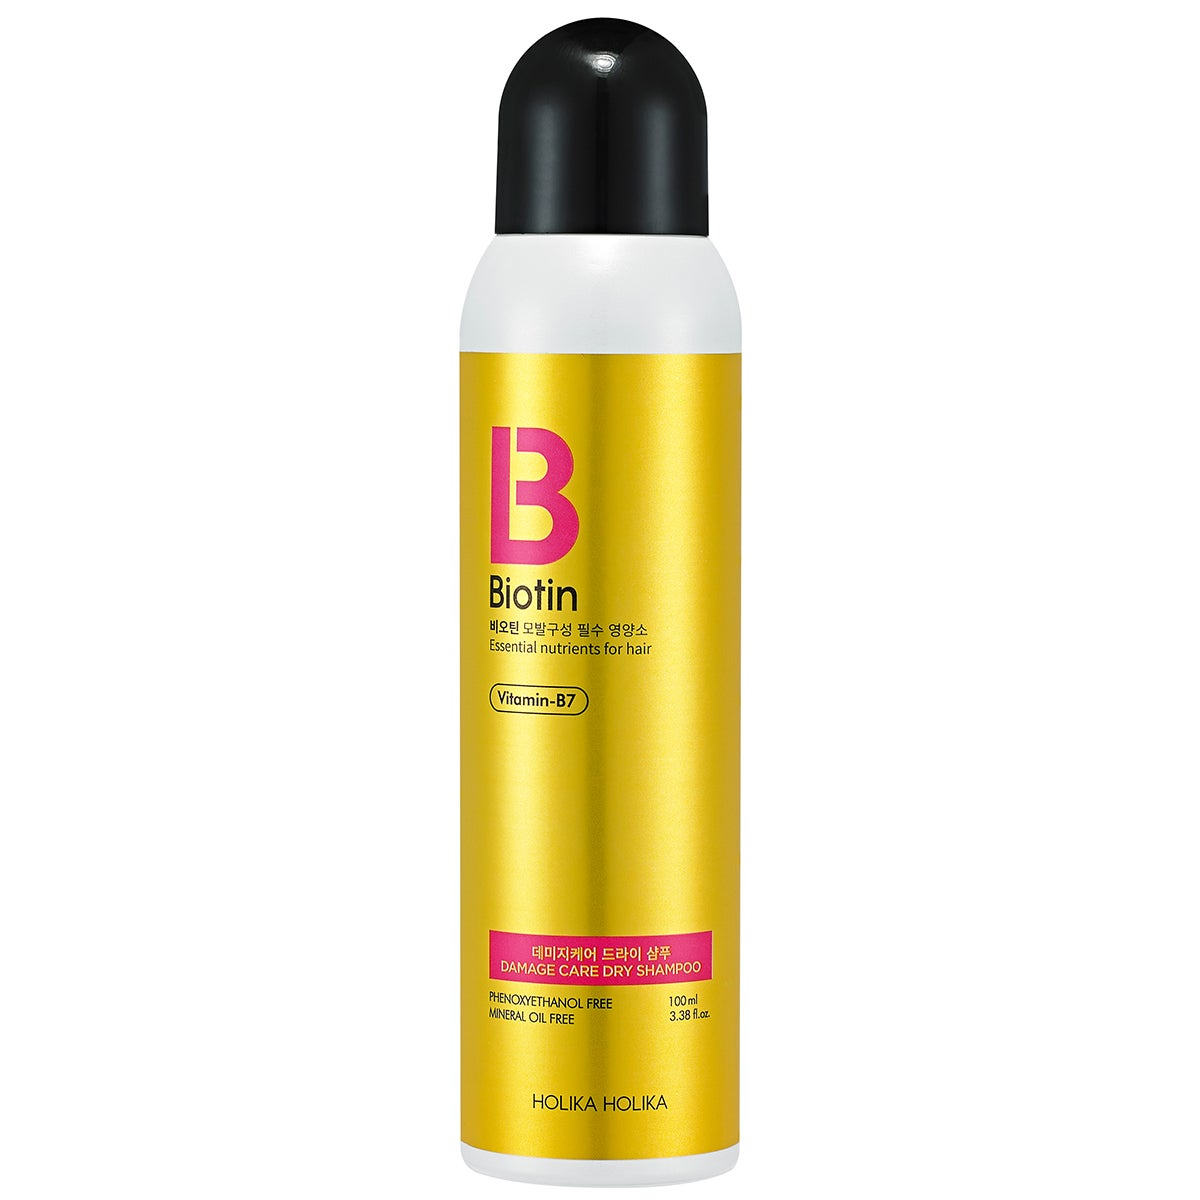 Holika Holika Biotin Damage Care Dry Shampoo